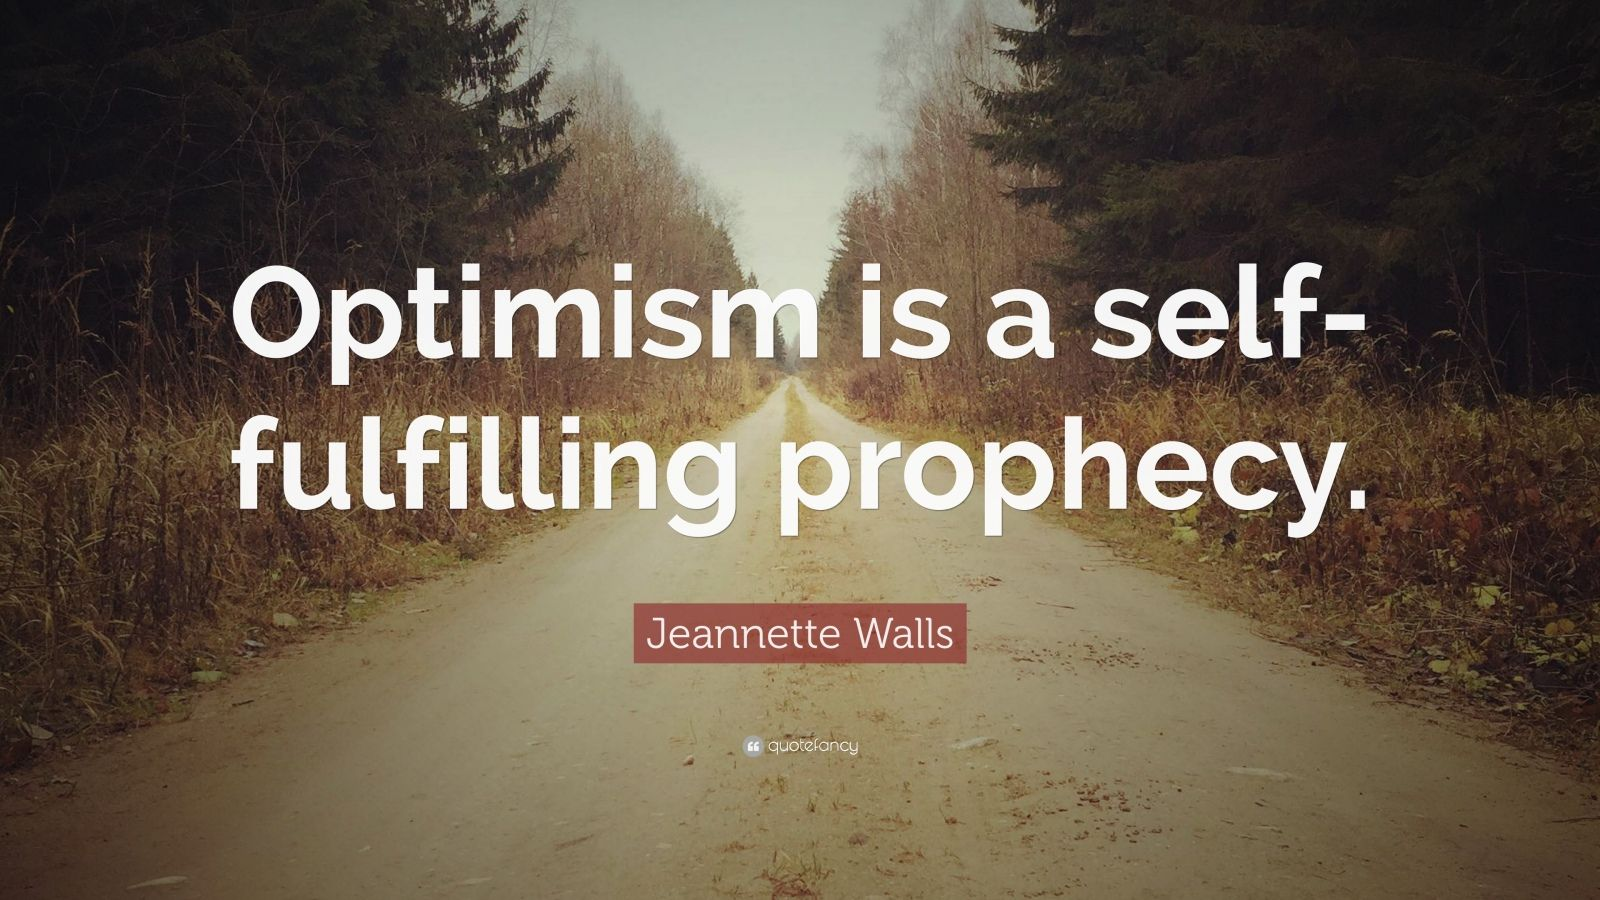 a self fulfilling prophecy The self-fulfilling prophecy is, in the beginning, a false definition of the situation evoking a new behavior which makes the originally false conception come true.